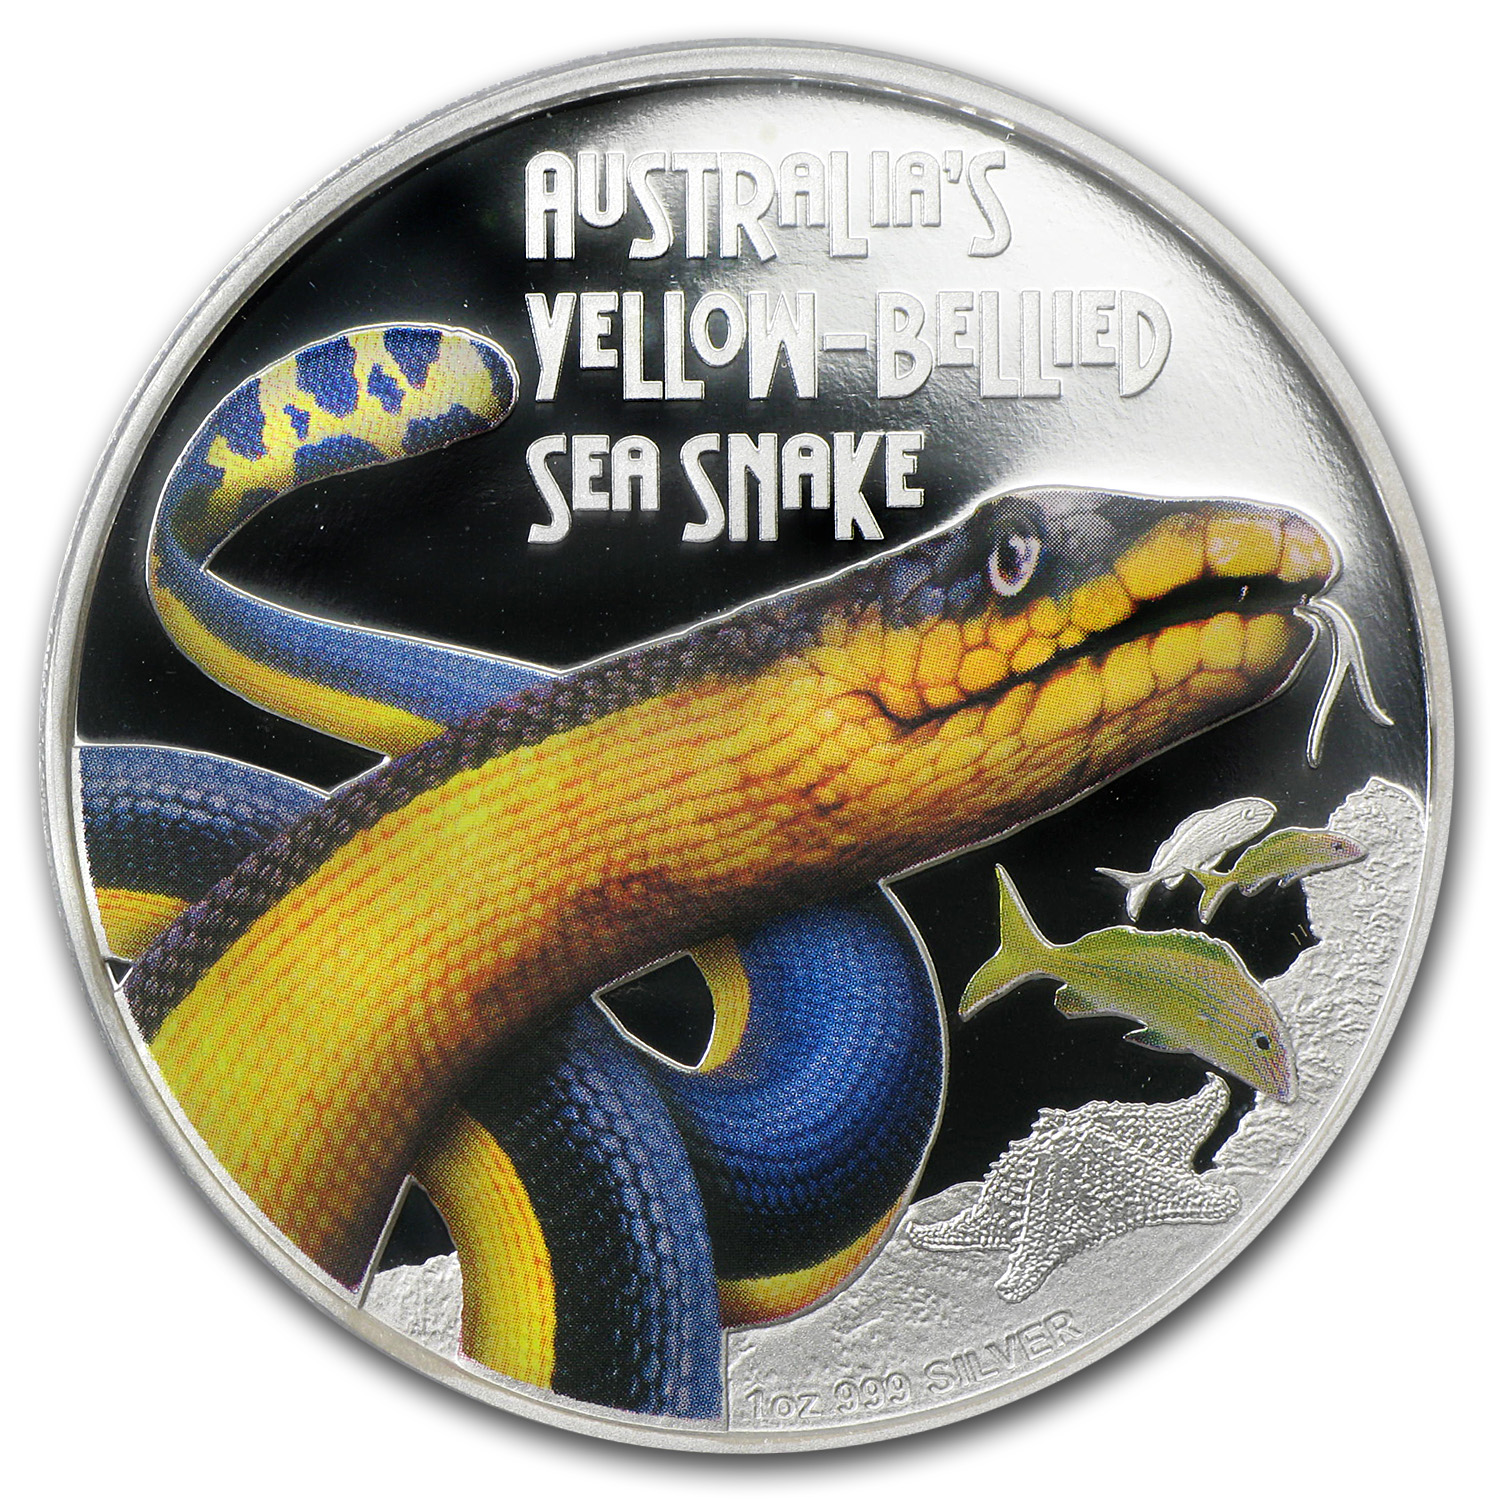 2013 Australia 1 oz Silver Yellow-Bellied Snake PR-70 PCGS